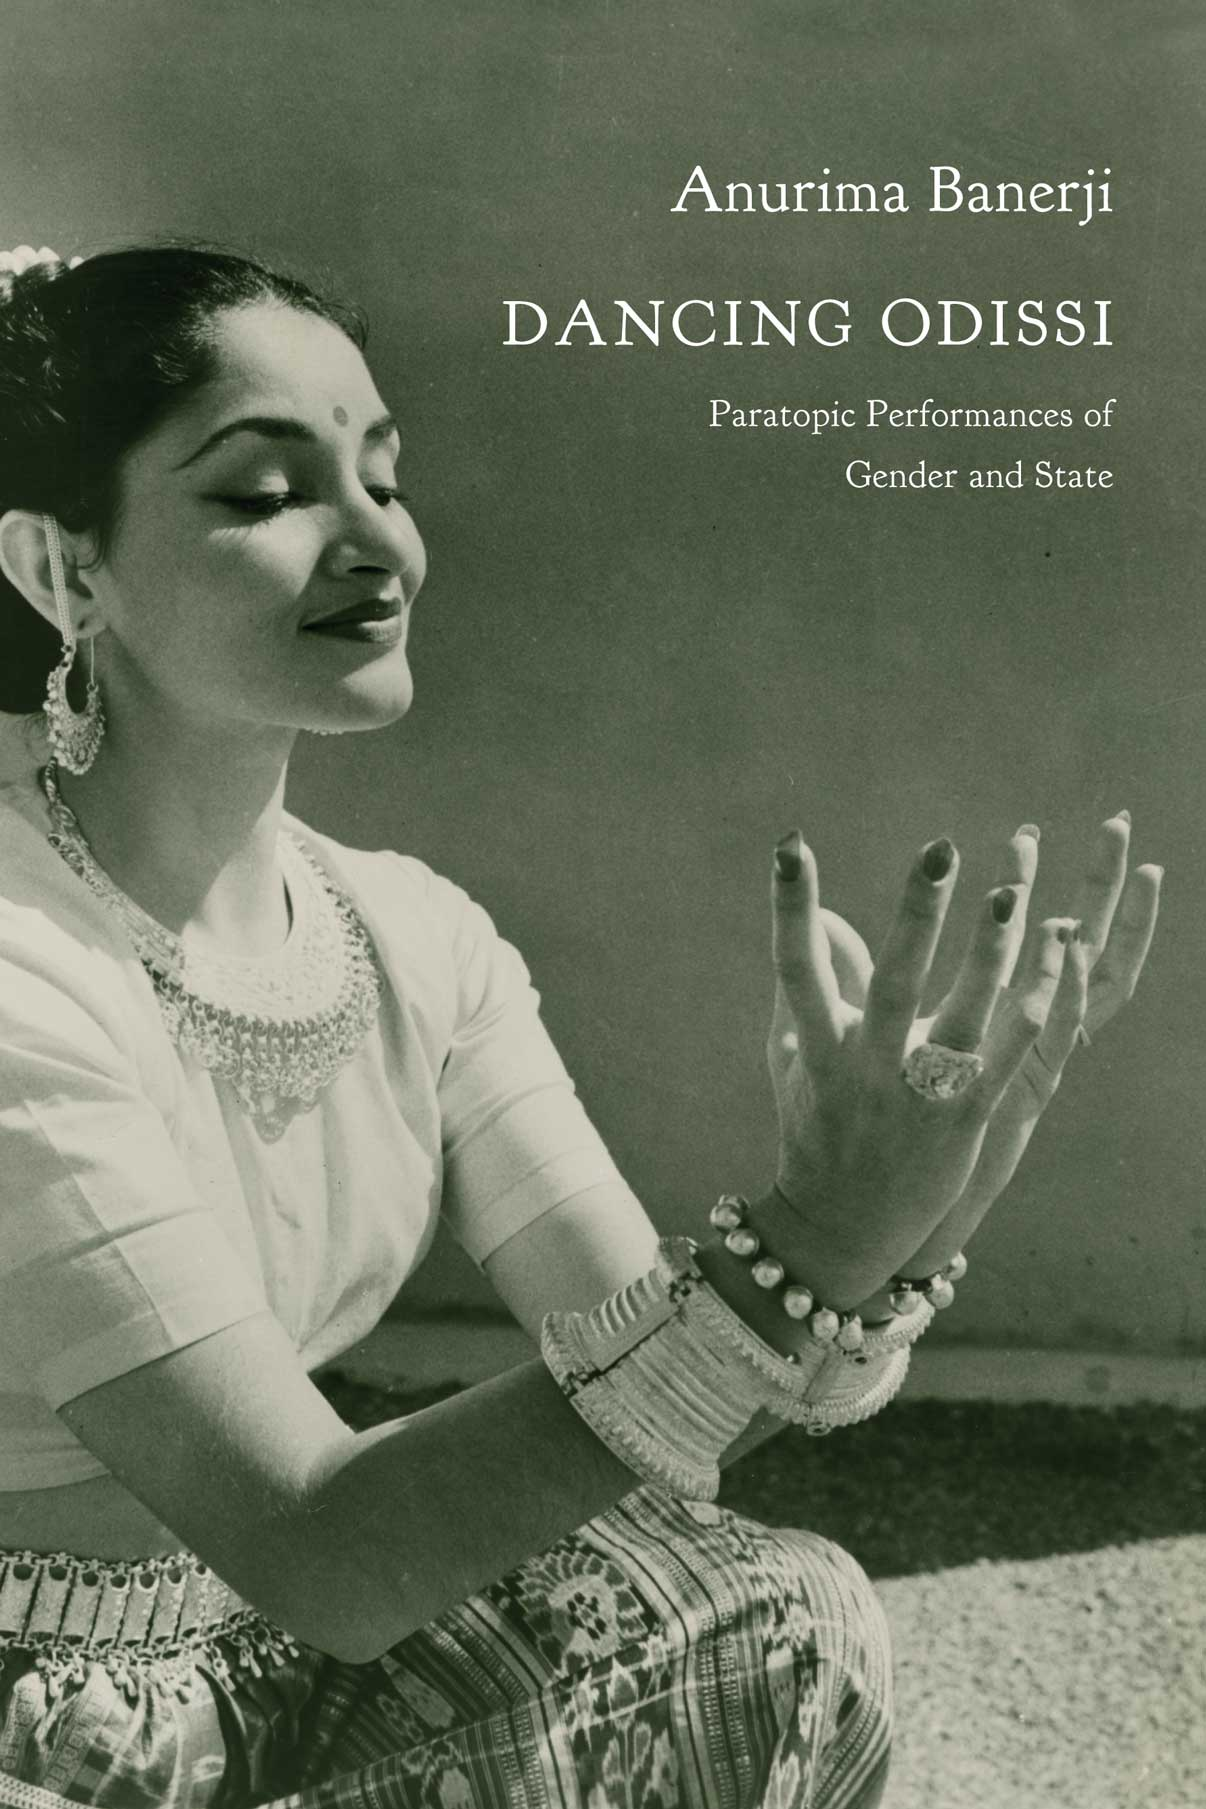 Dancing Odissi : Paratopic Performances of Gender and State by Anurima Banerji |  Seagull Books